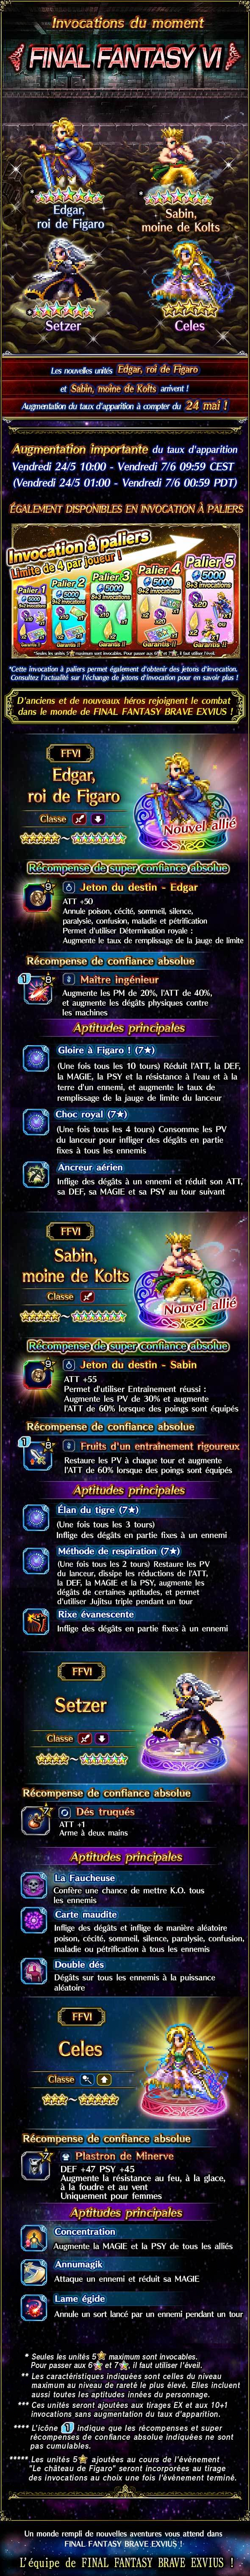 Invocations du moment - FFVI (KEdgar/MSabin) - du 24/05 au 07/06/19 Gacha_NEWS_FigaroFeatureSummon_Compilation